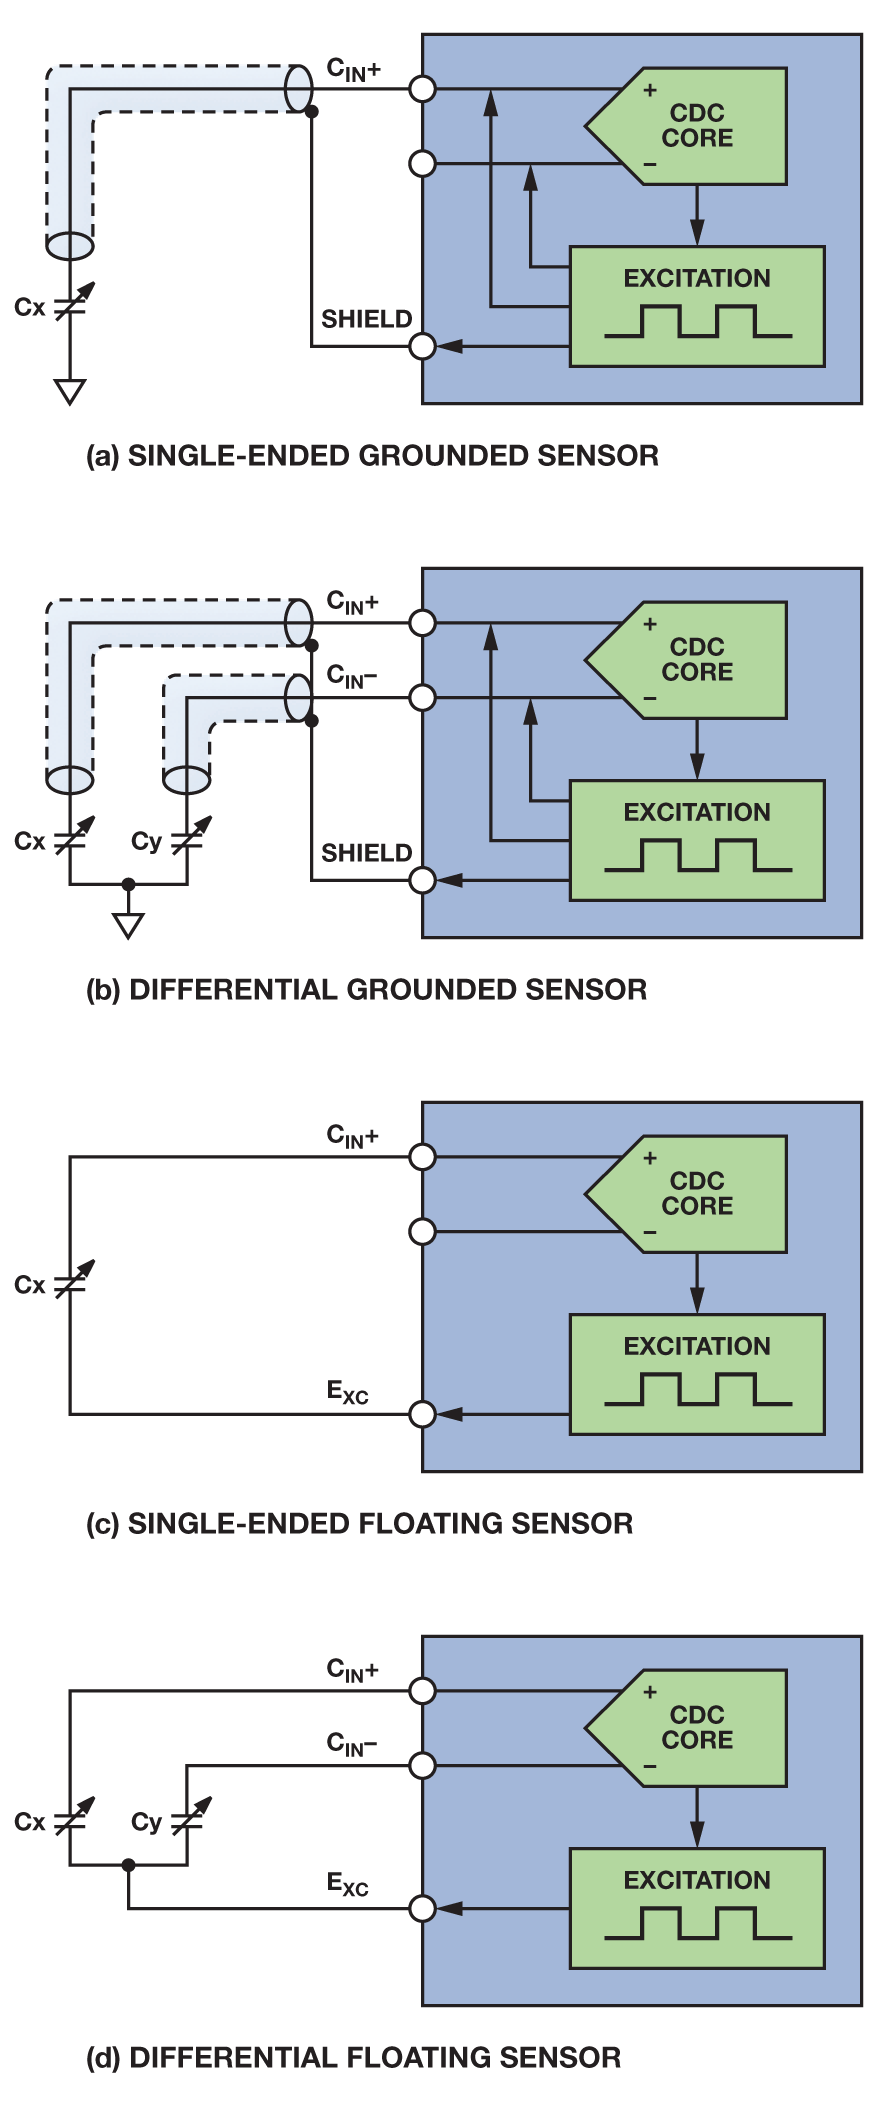 medium resolution of configurations for single ended differential grounded and floating sensor applications